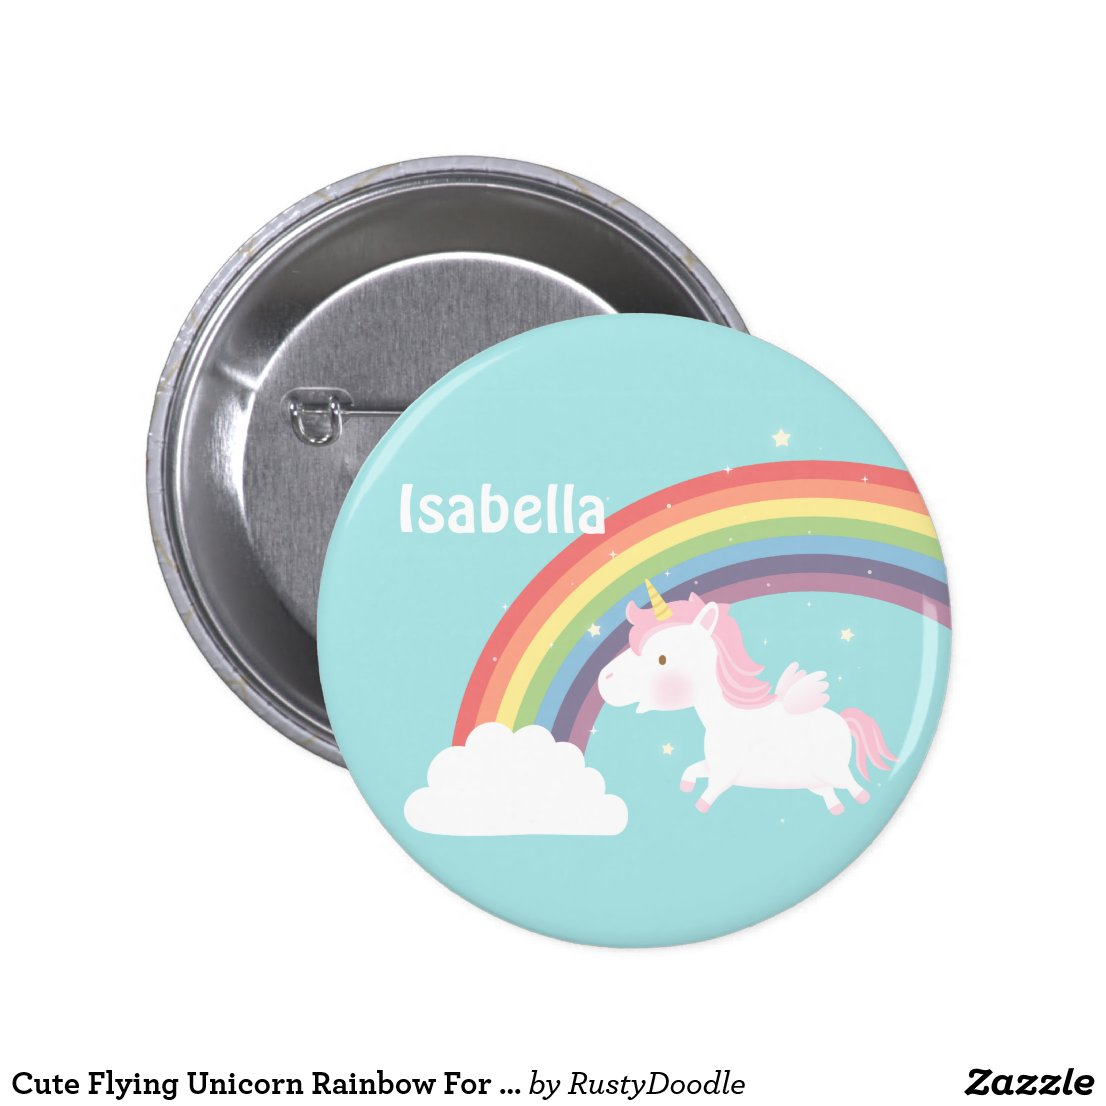 Cute Flying Unicorn Rainbow Badge